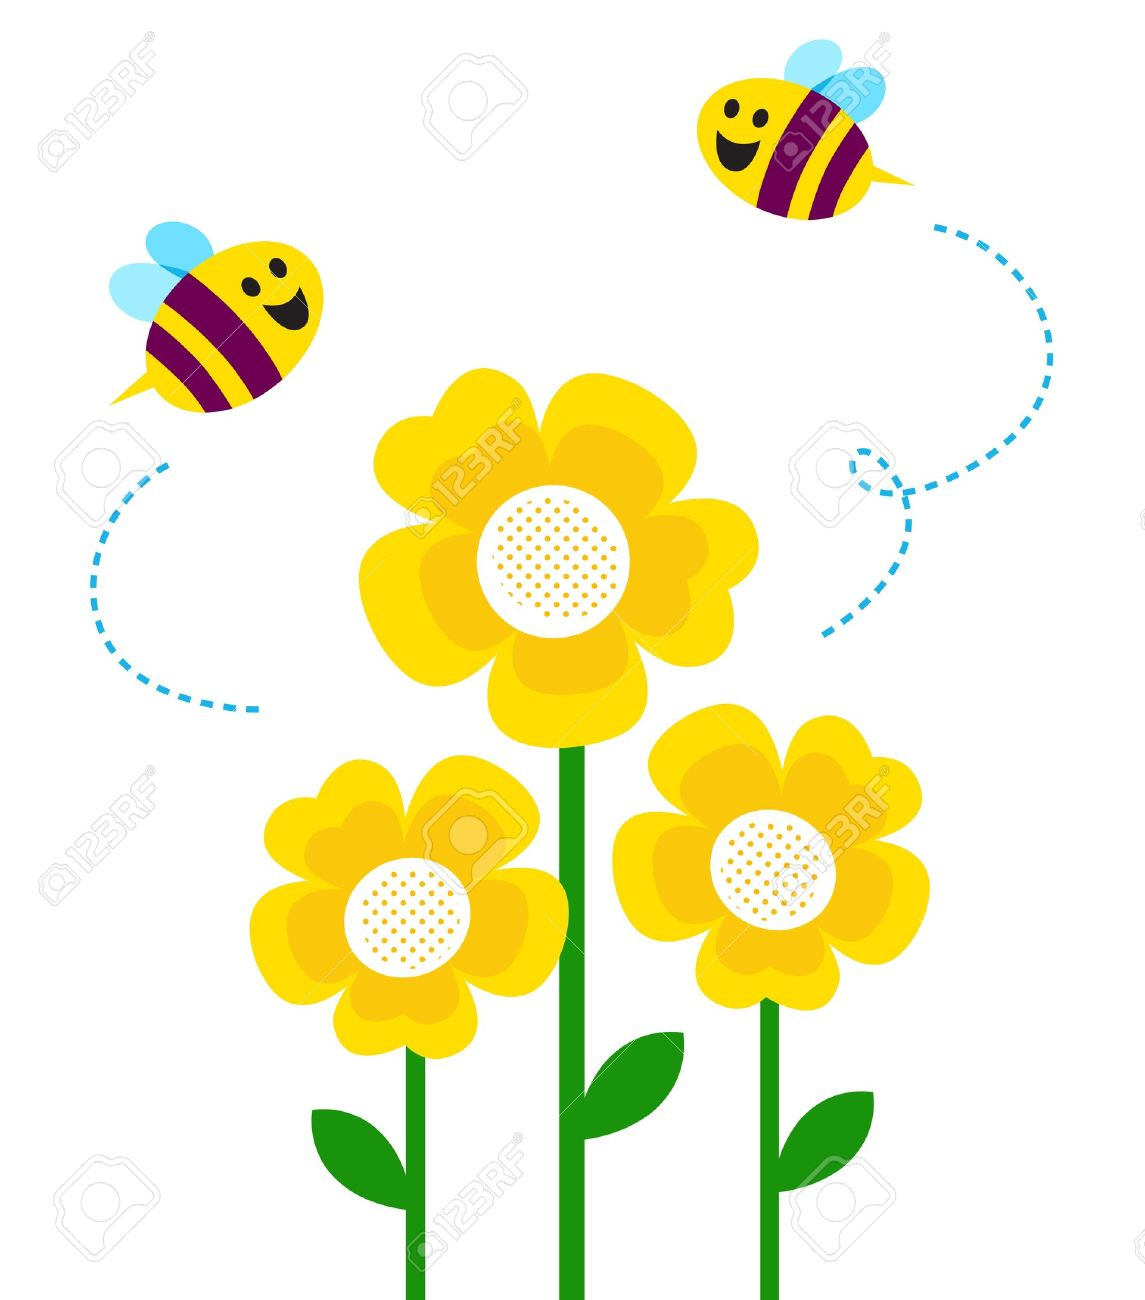 Flower bee clipart 20 free Cliparts